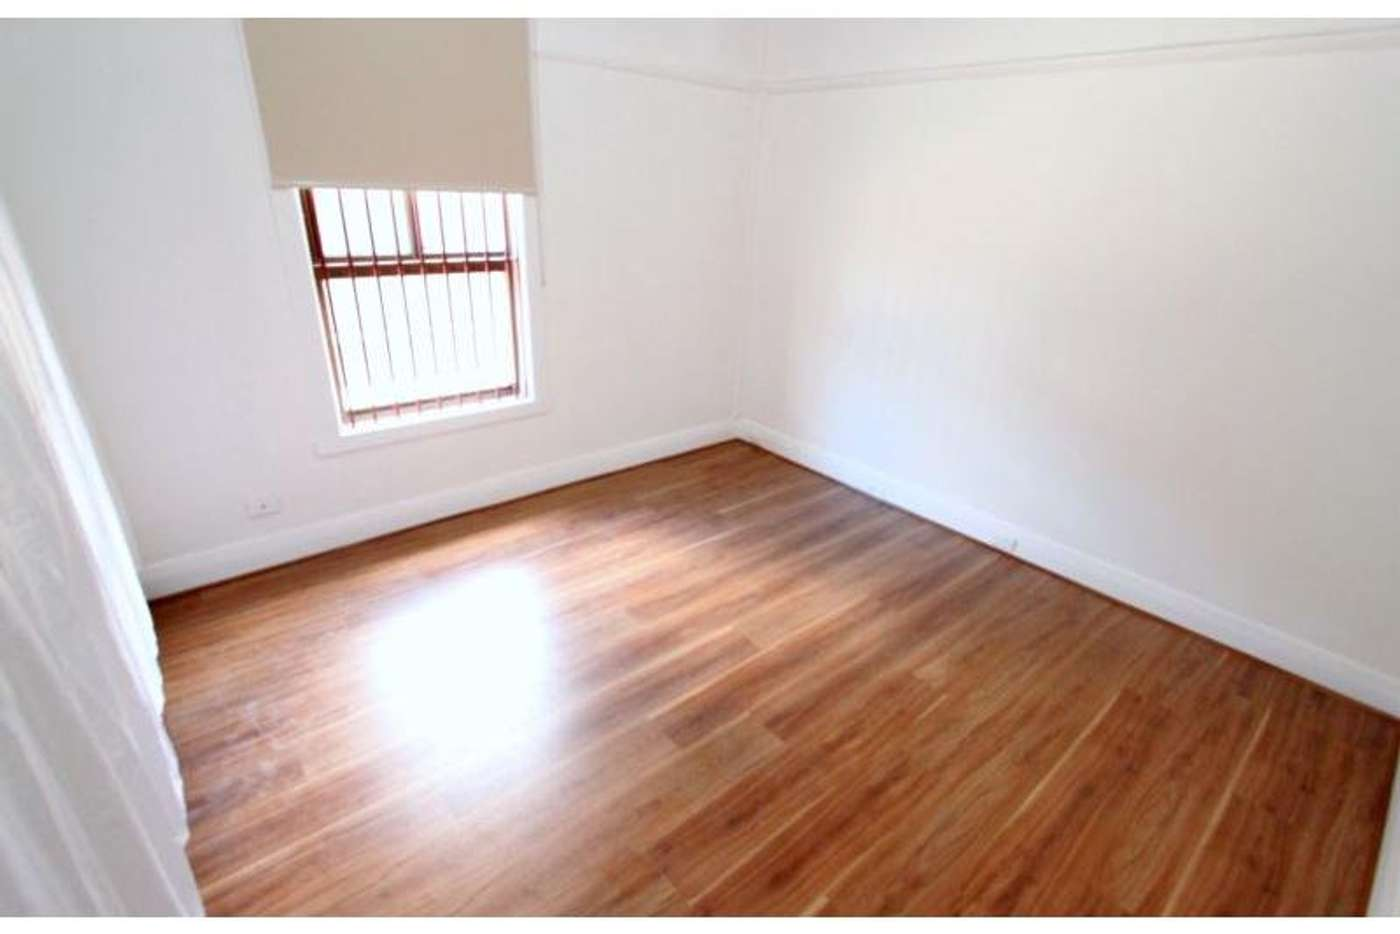 Sixth view of Homely unit listing, 1/716 Barkly Street, West Footscray VIC 3012